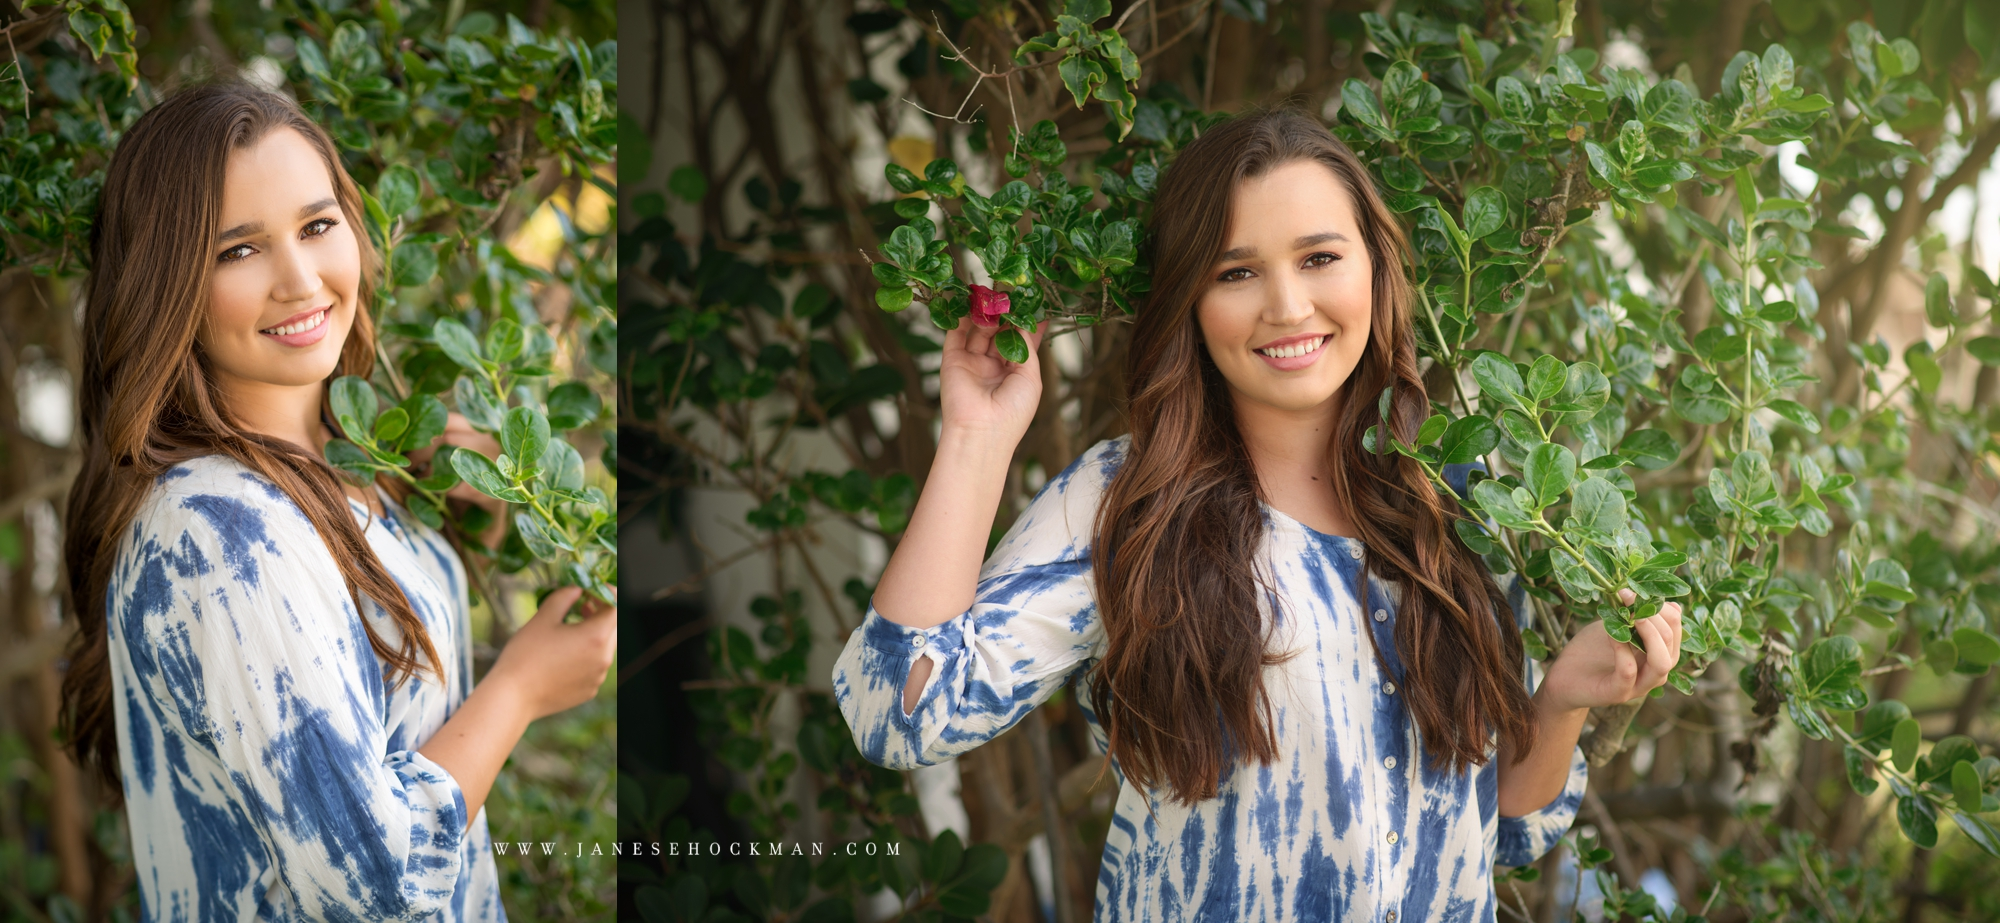 Tatum | Janese Hockman Photography | High School Senior Portraits | San Luis Obispo, California 1.jpg